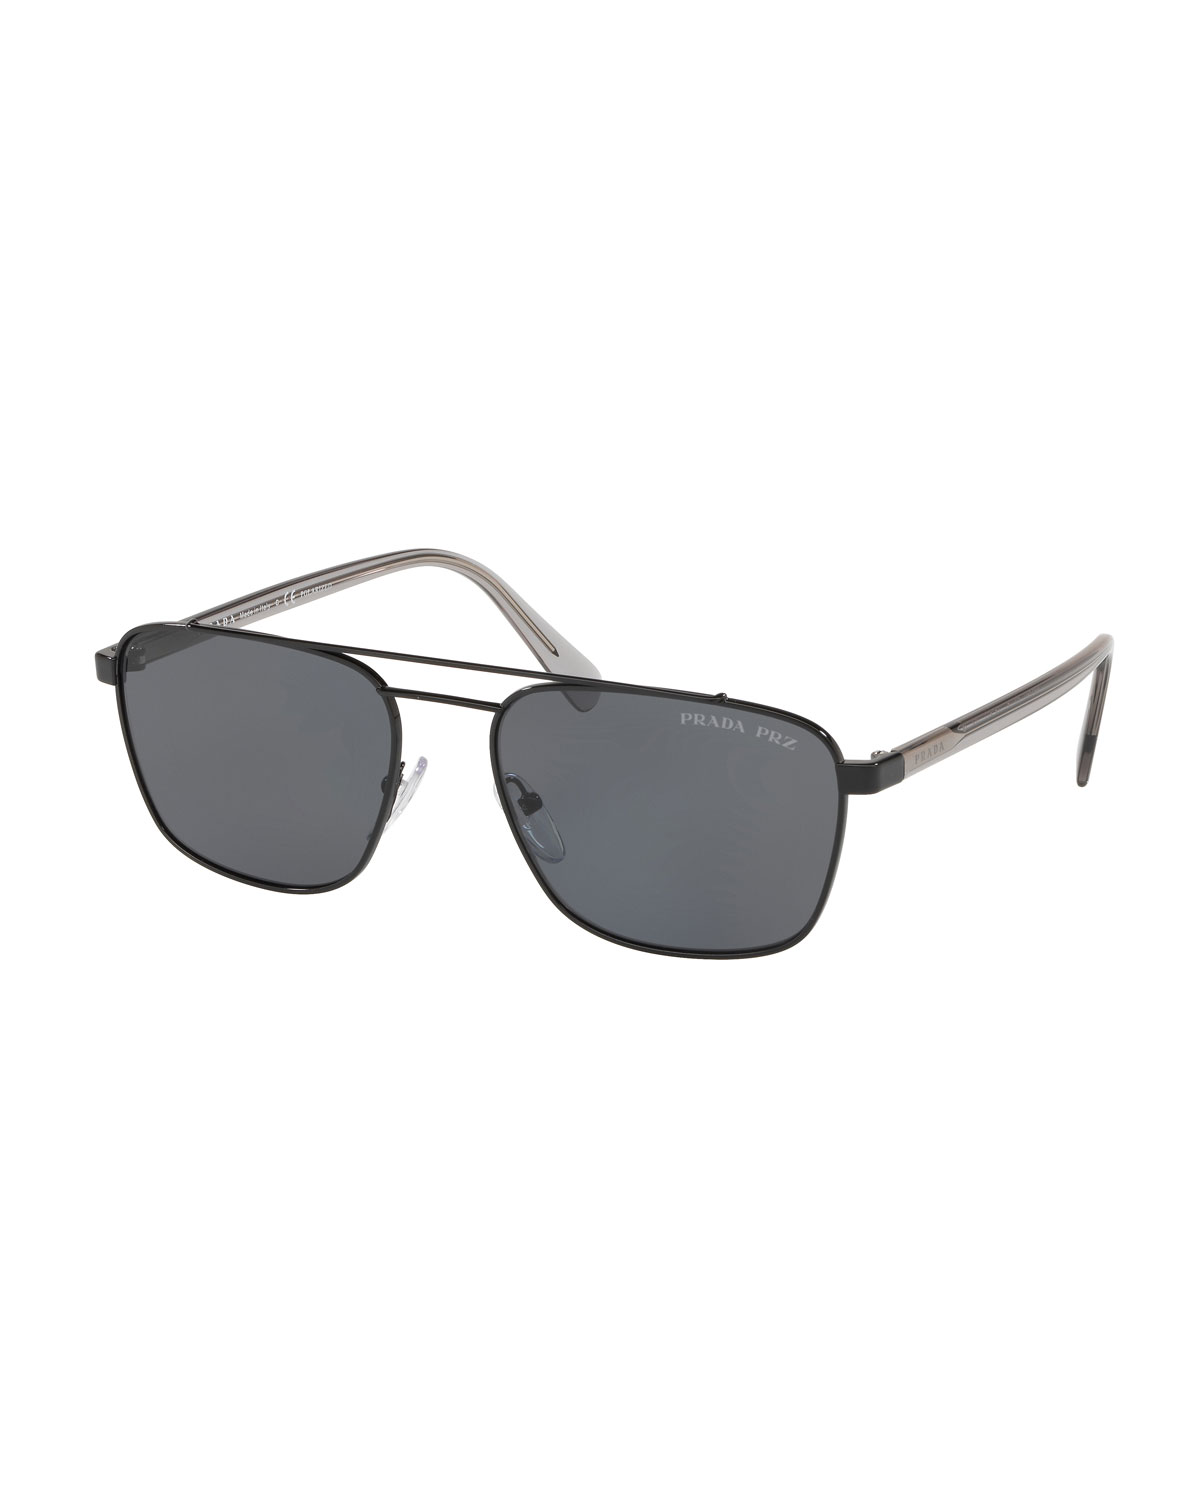 017975f84ec5 Prada Men s Square Metal Aviator Sunglasses - Solid Lenses